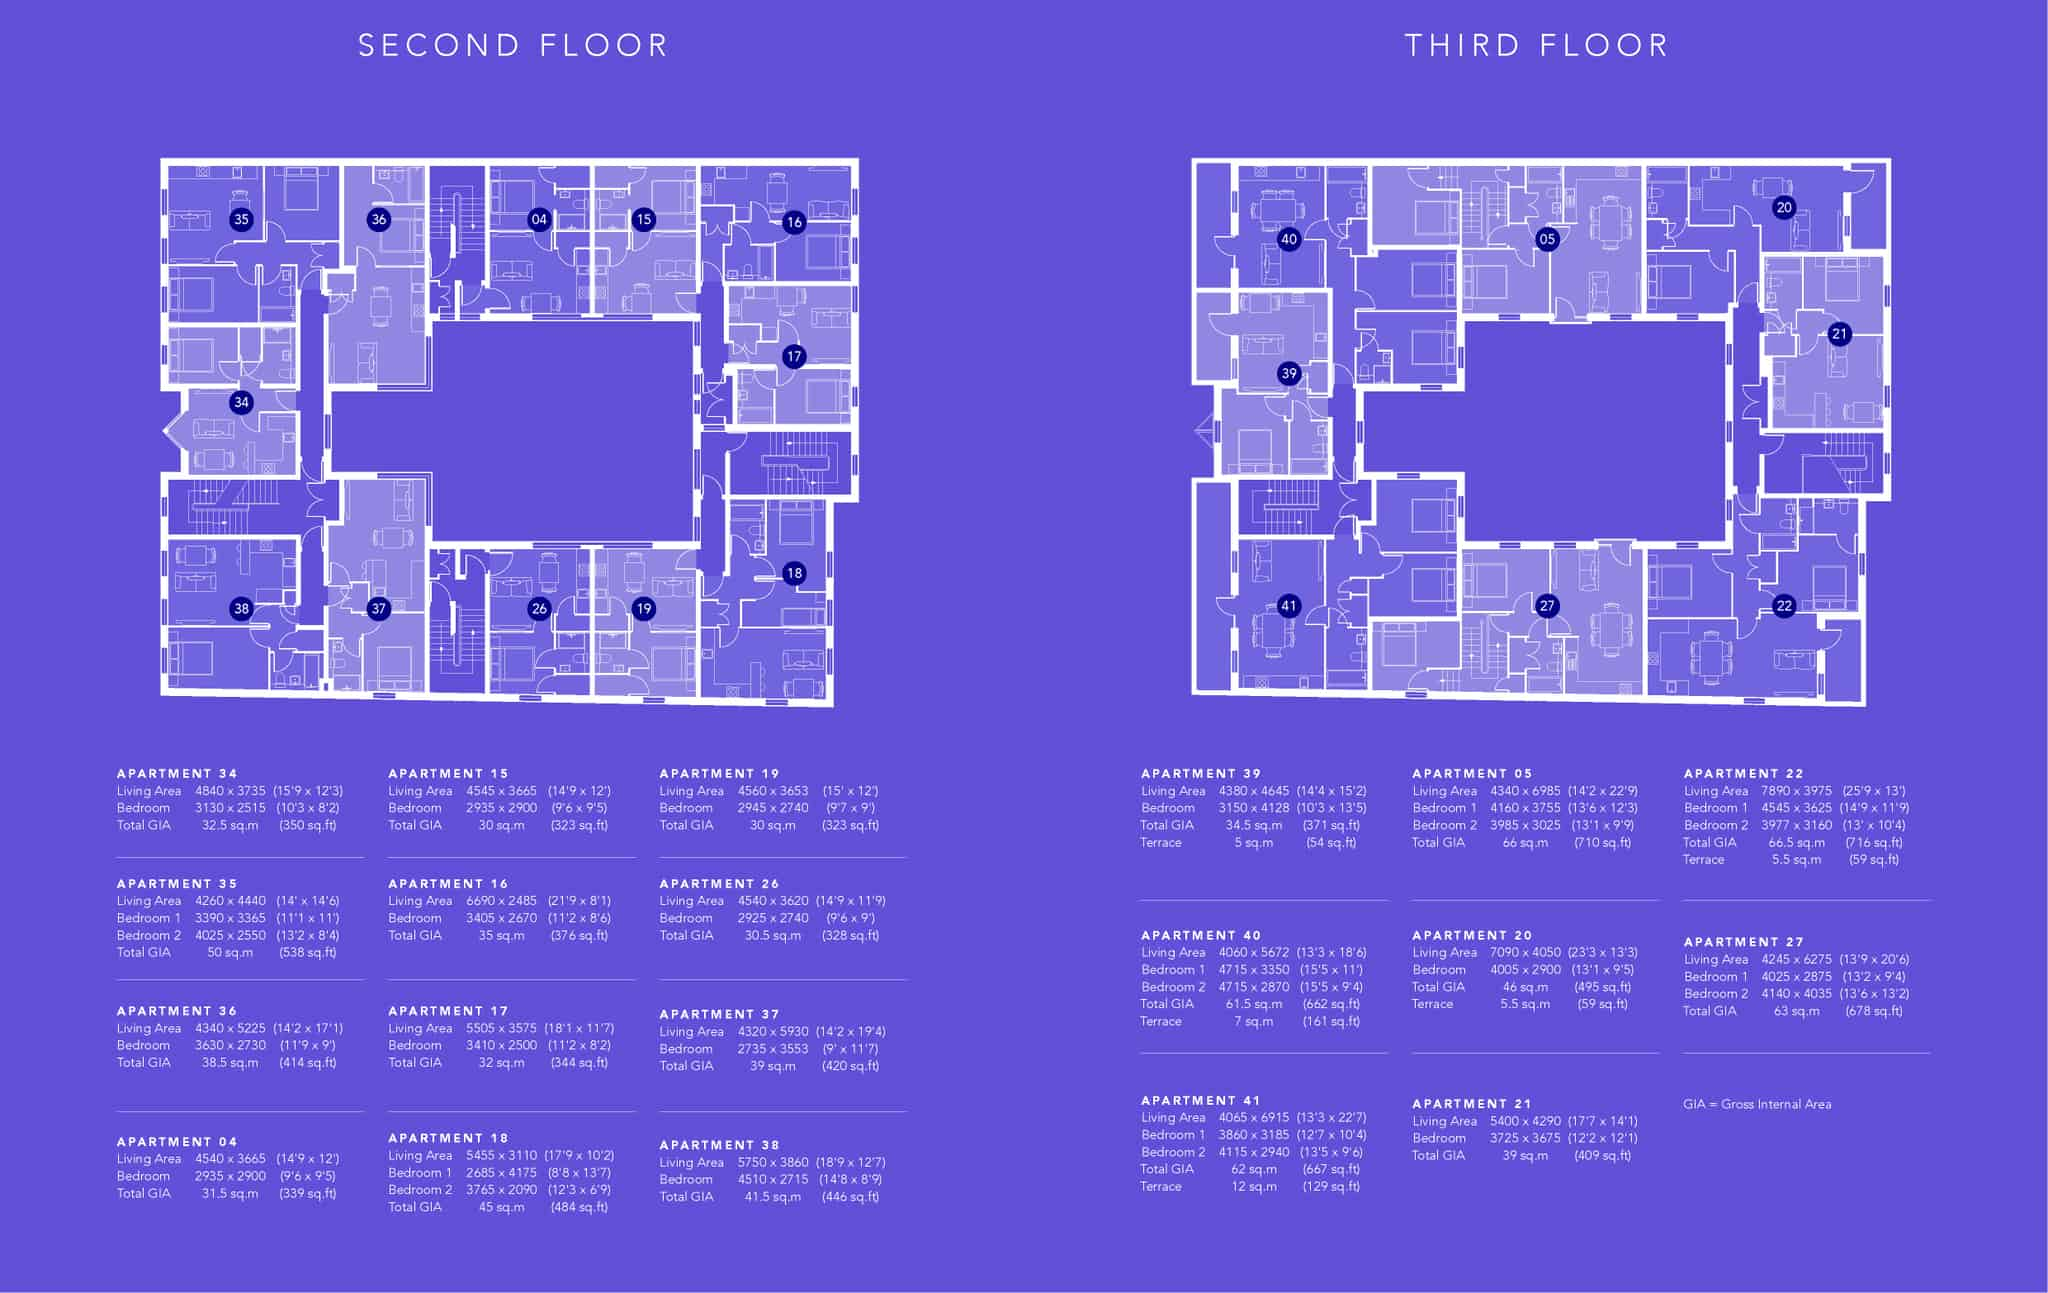 Ocea Saxon Gate Floorplan Commercial to Residential Property Conversion Apartment